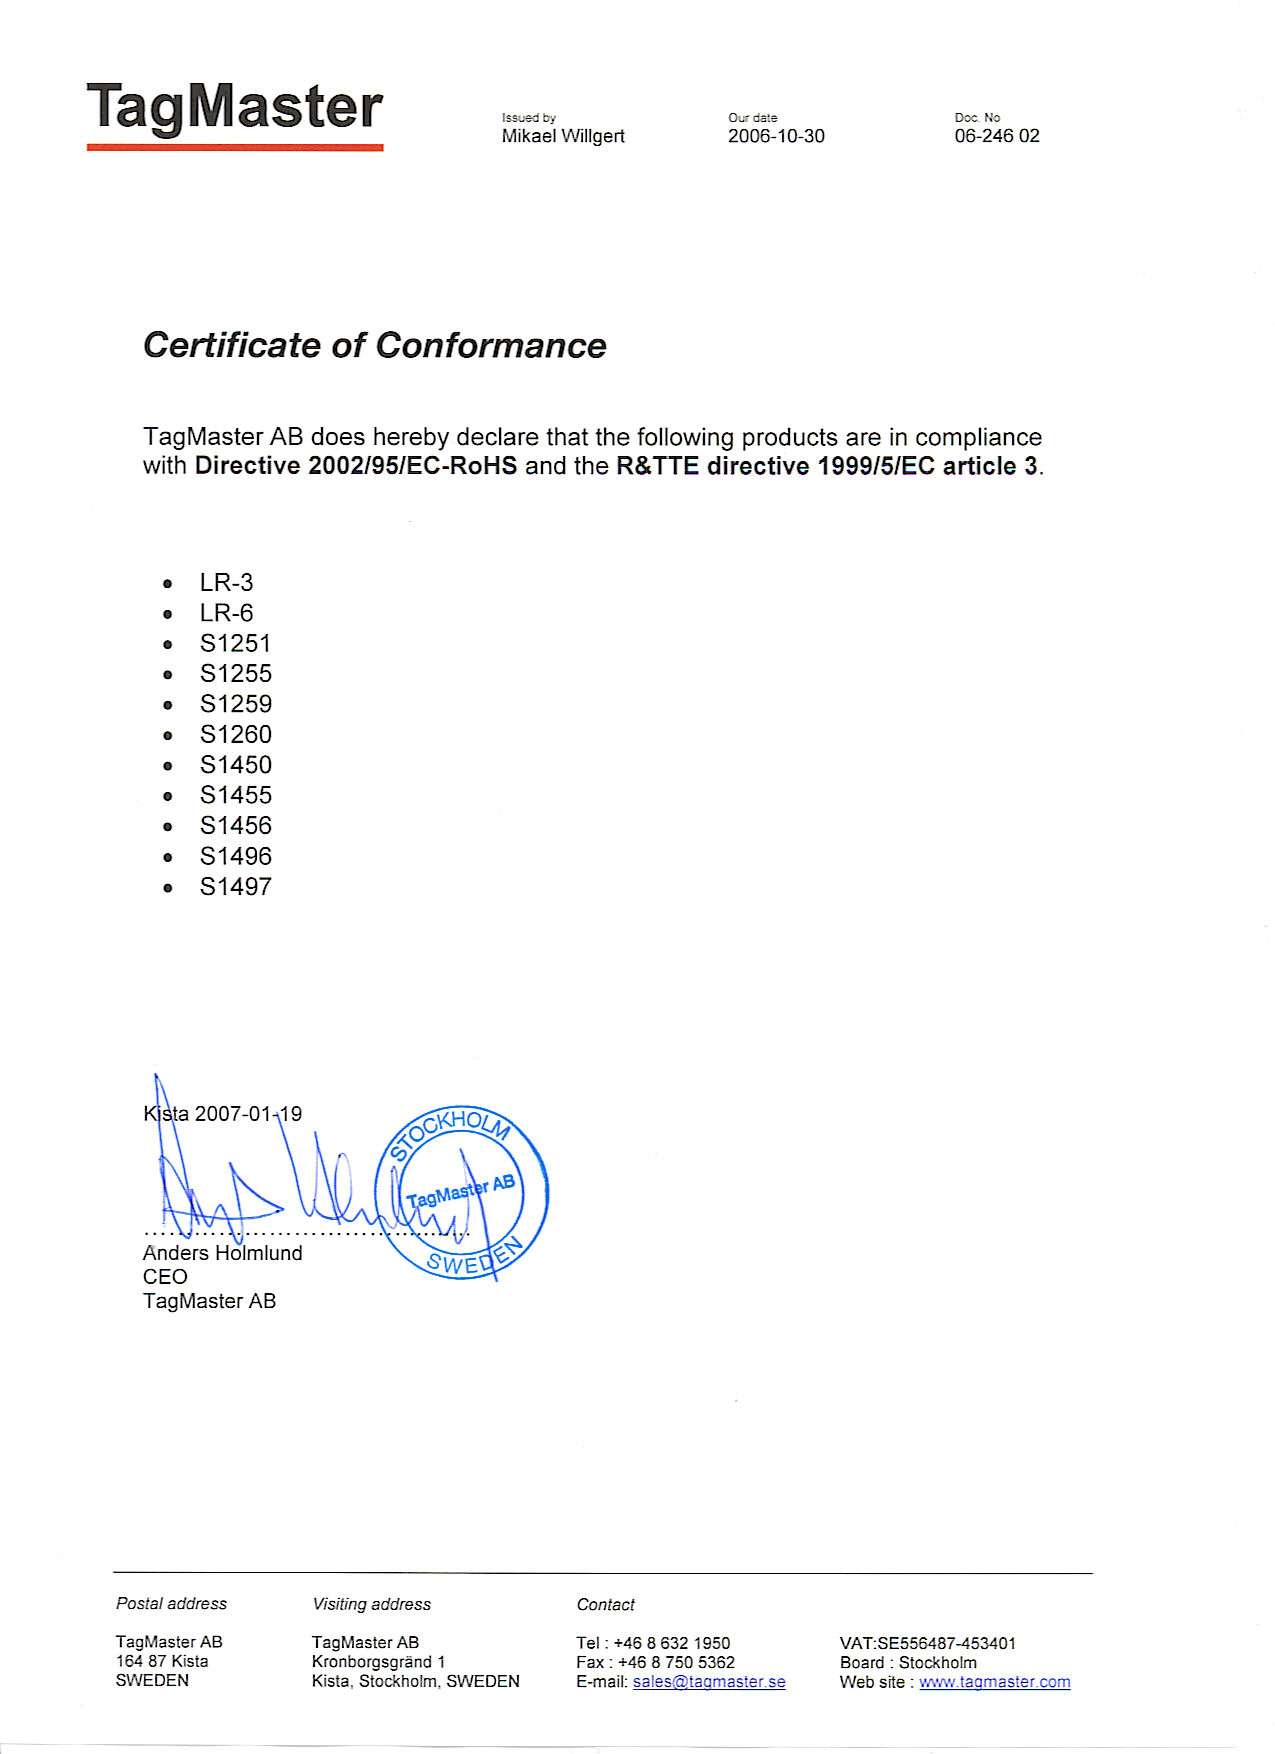 Certificate Of Conformance With Rohs Directive Advanced